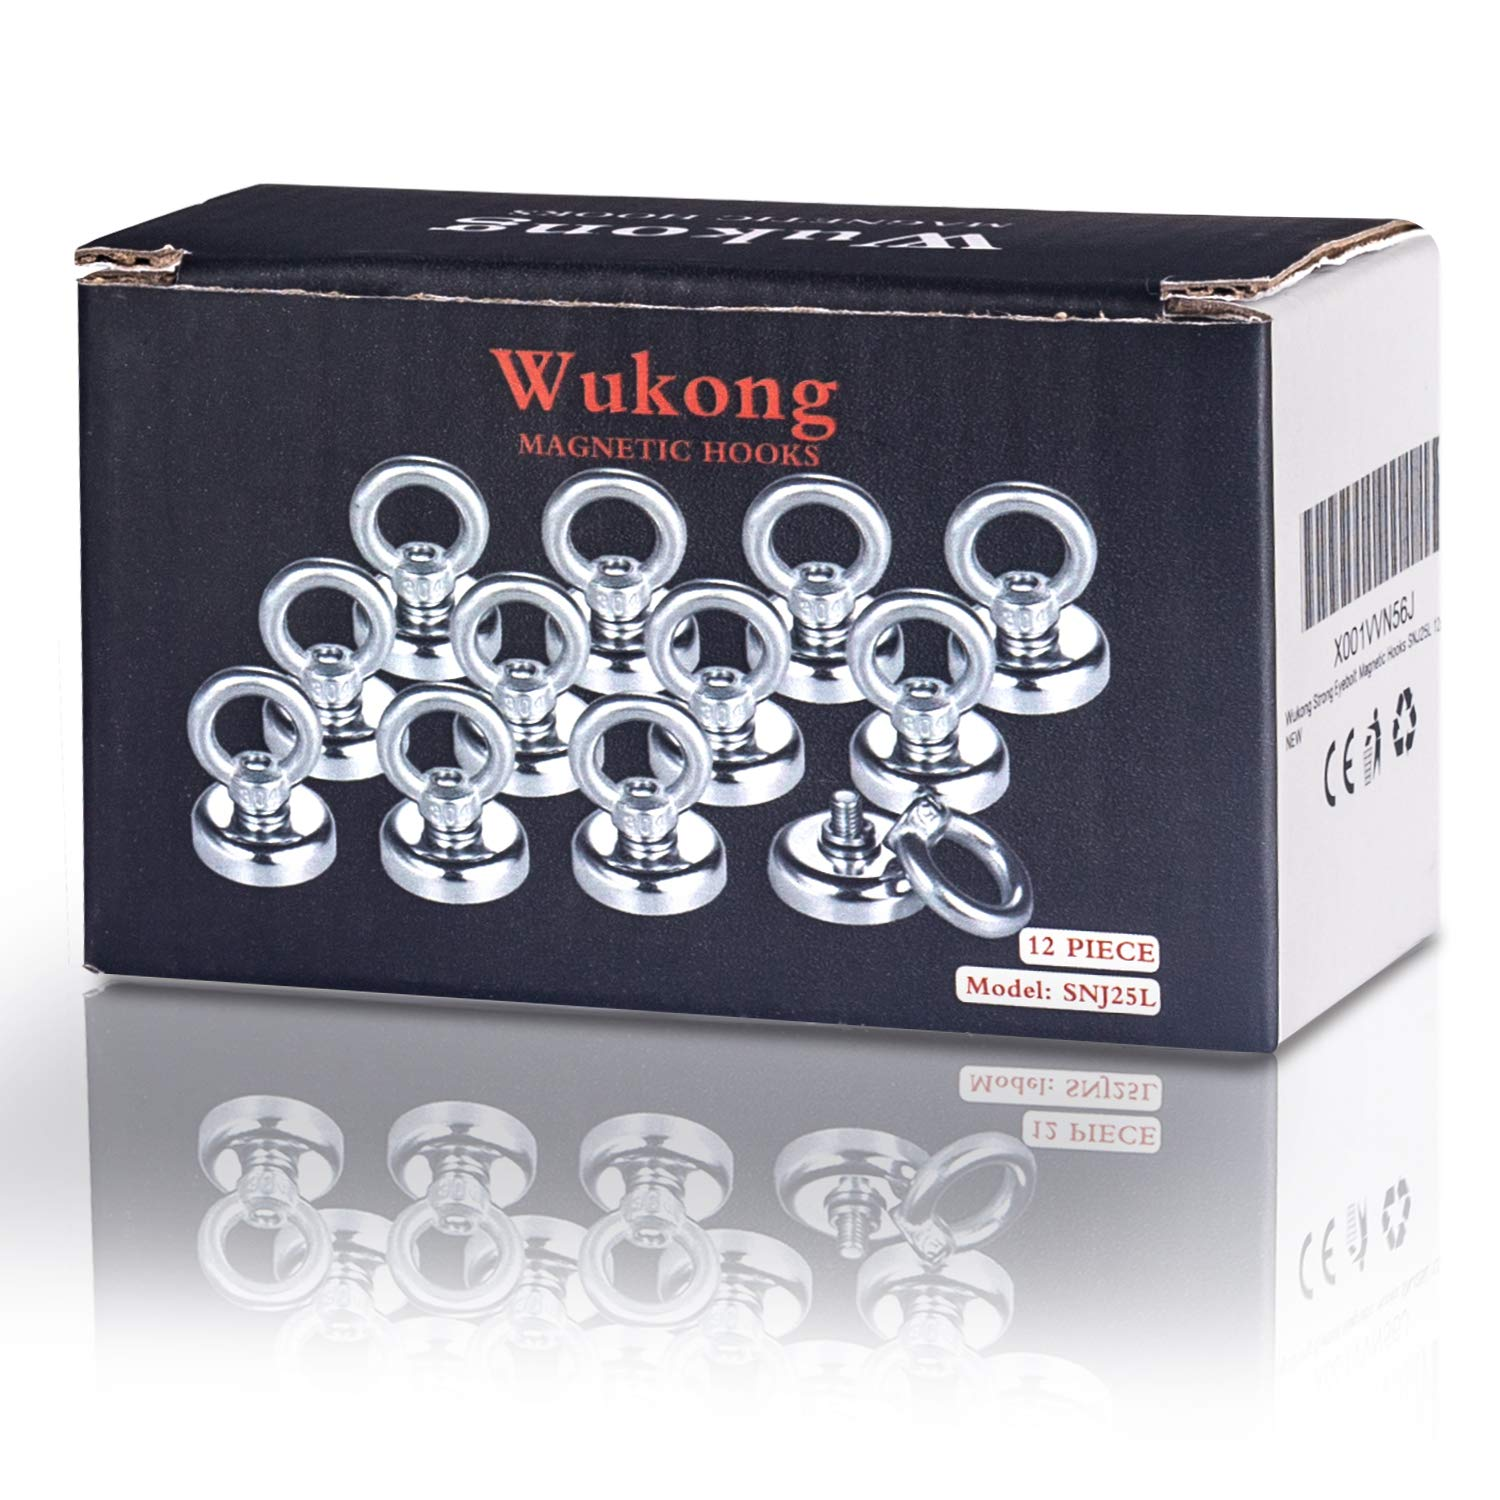 25mm Wukong 12 Pack Magnet Hook,19kg Pulling Force Powerful Round Neodymium Fishing Magnet Heavy Duty Magnetic Hooks Diameter 0.98 inch